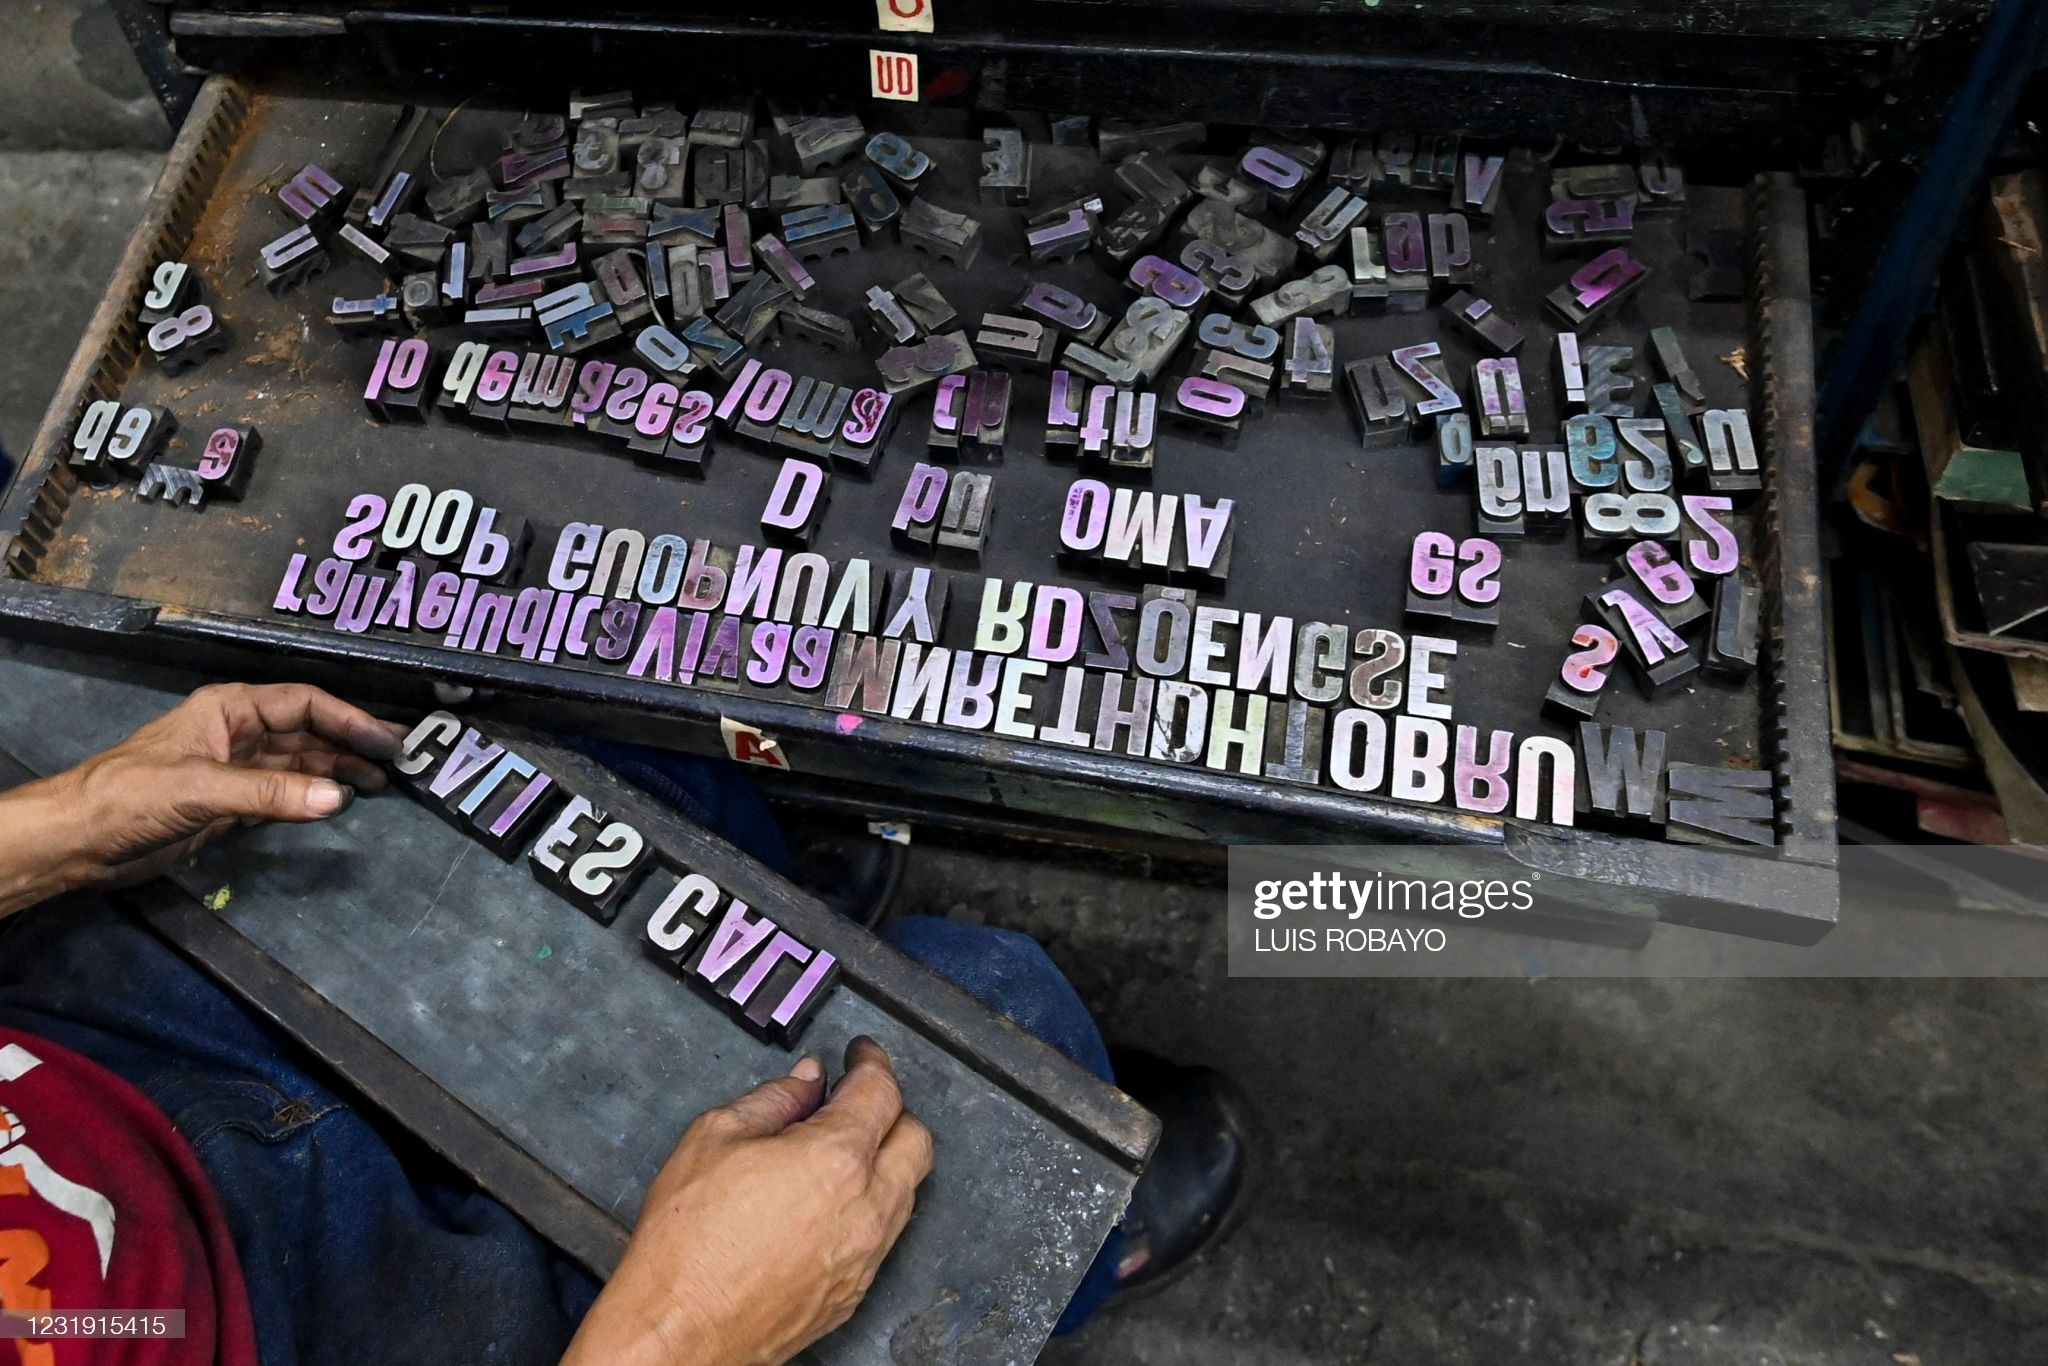 Olmedo Franco, 62, arranges typography letter stamps to be used in a 1890 New Yorks Reliance printing press, at La Linterna printing house in Cali, Colombia, on March 2, 2021. - In the heart of the colonial district of Cali, the La Linterna printing house was slowly dying out until graphic designers and street artists rekindled this beacon of traditional typography. (Photo by Luis ROBAYO / AFP) (Photo by LUIS ROBAYO/AFP via Getty Images)